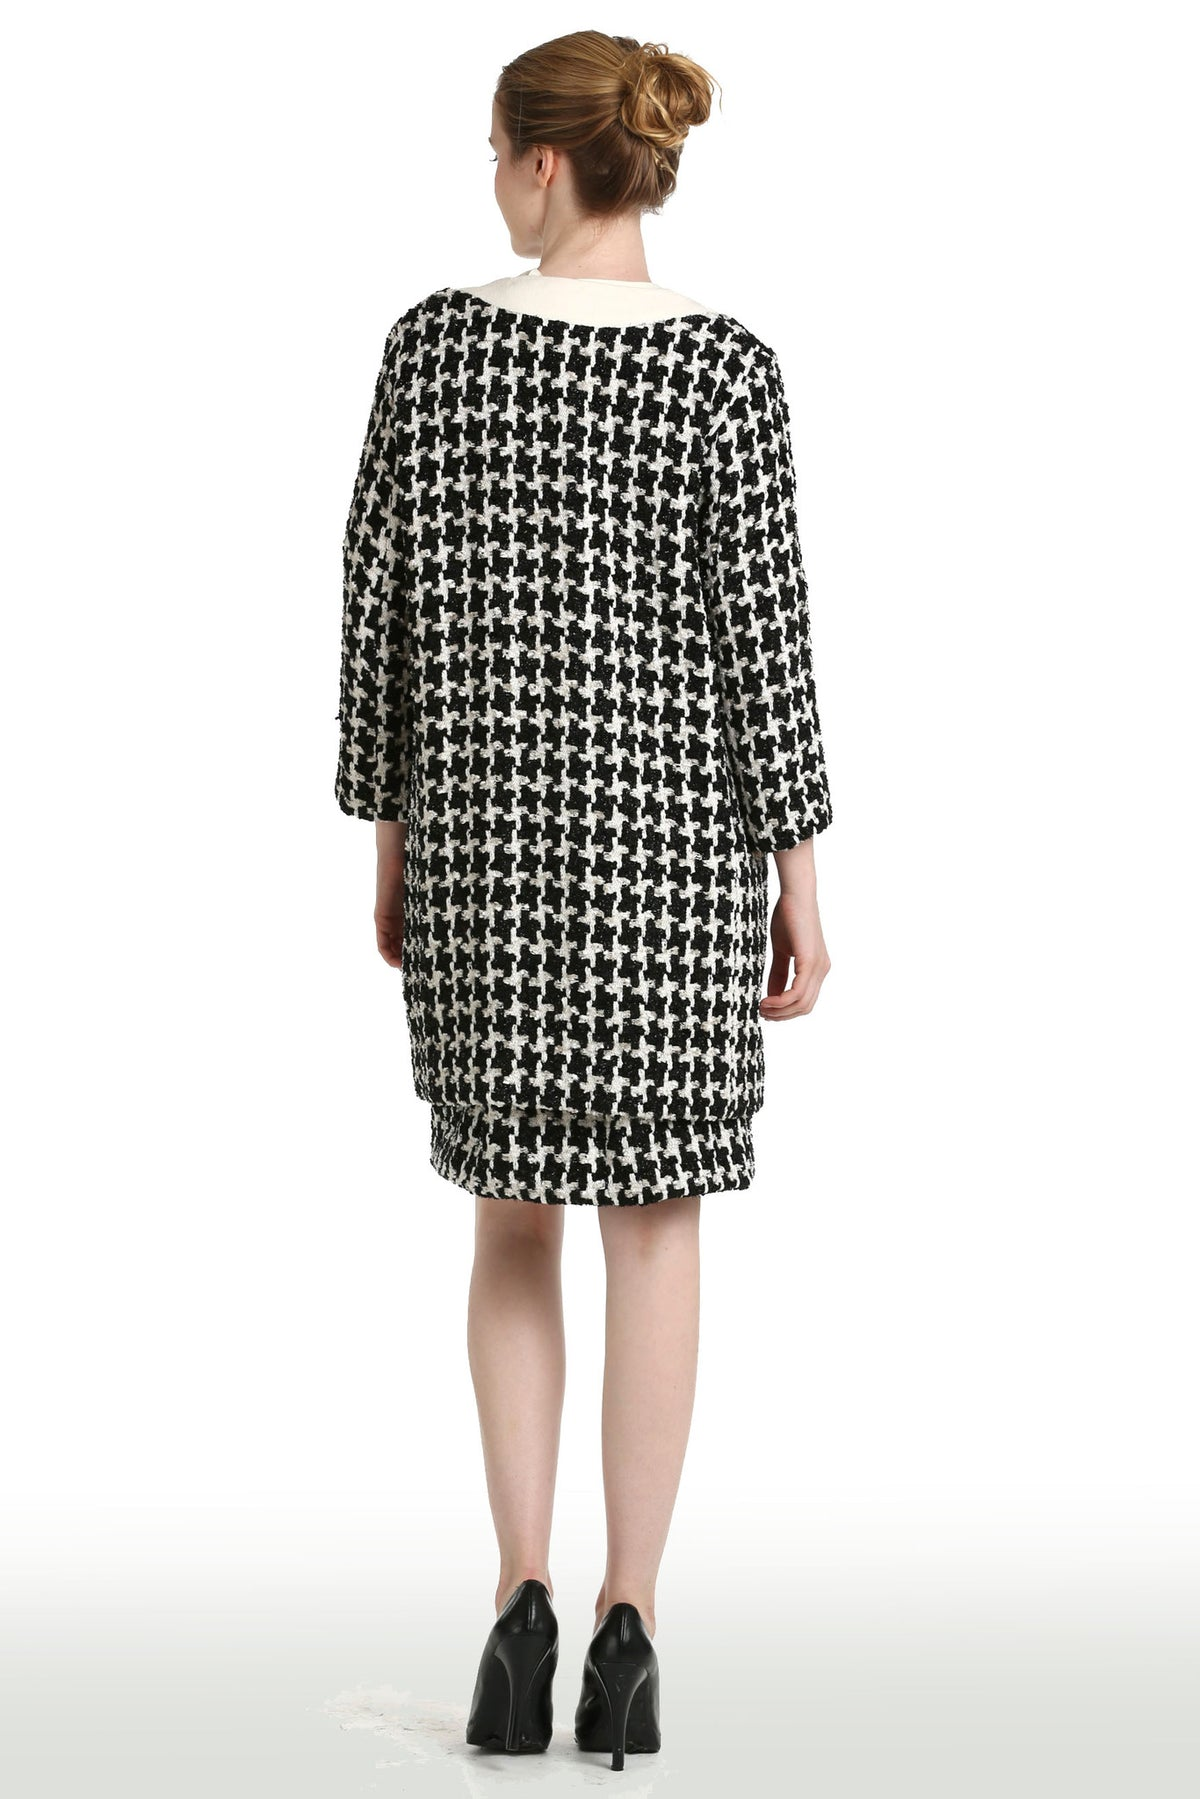 Black & White Houndstooth Coat